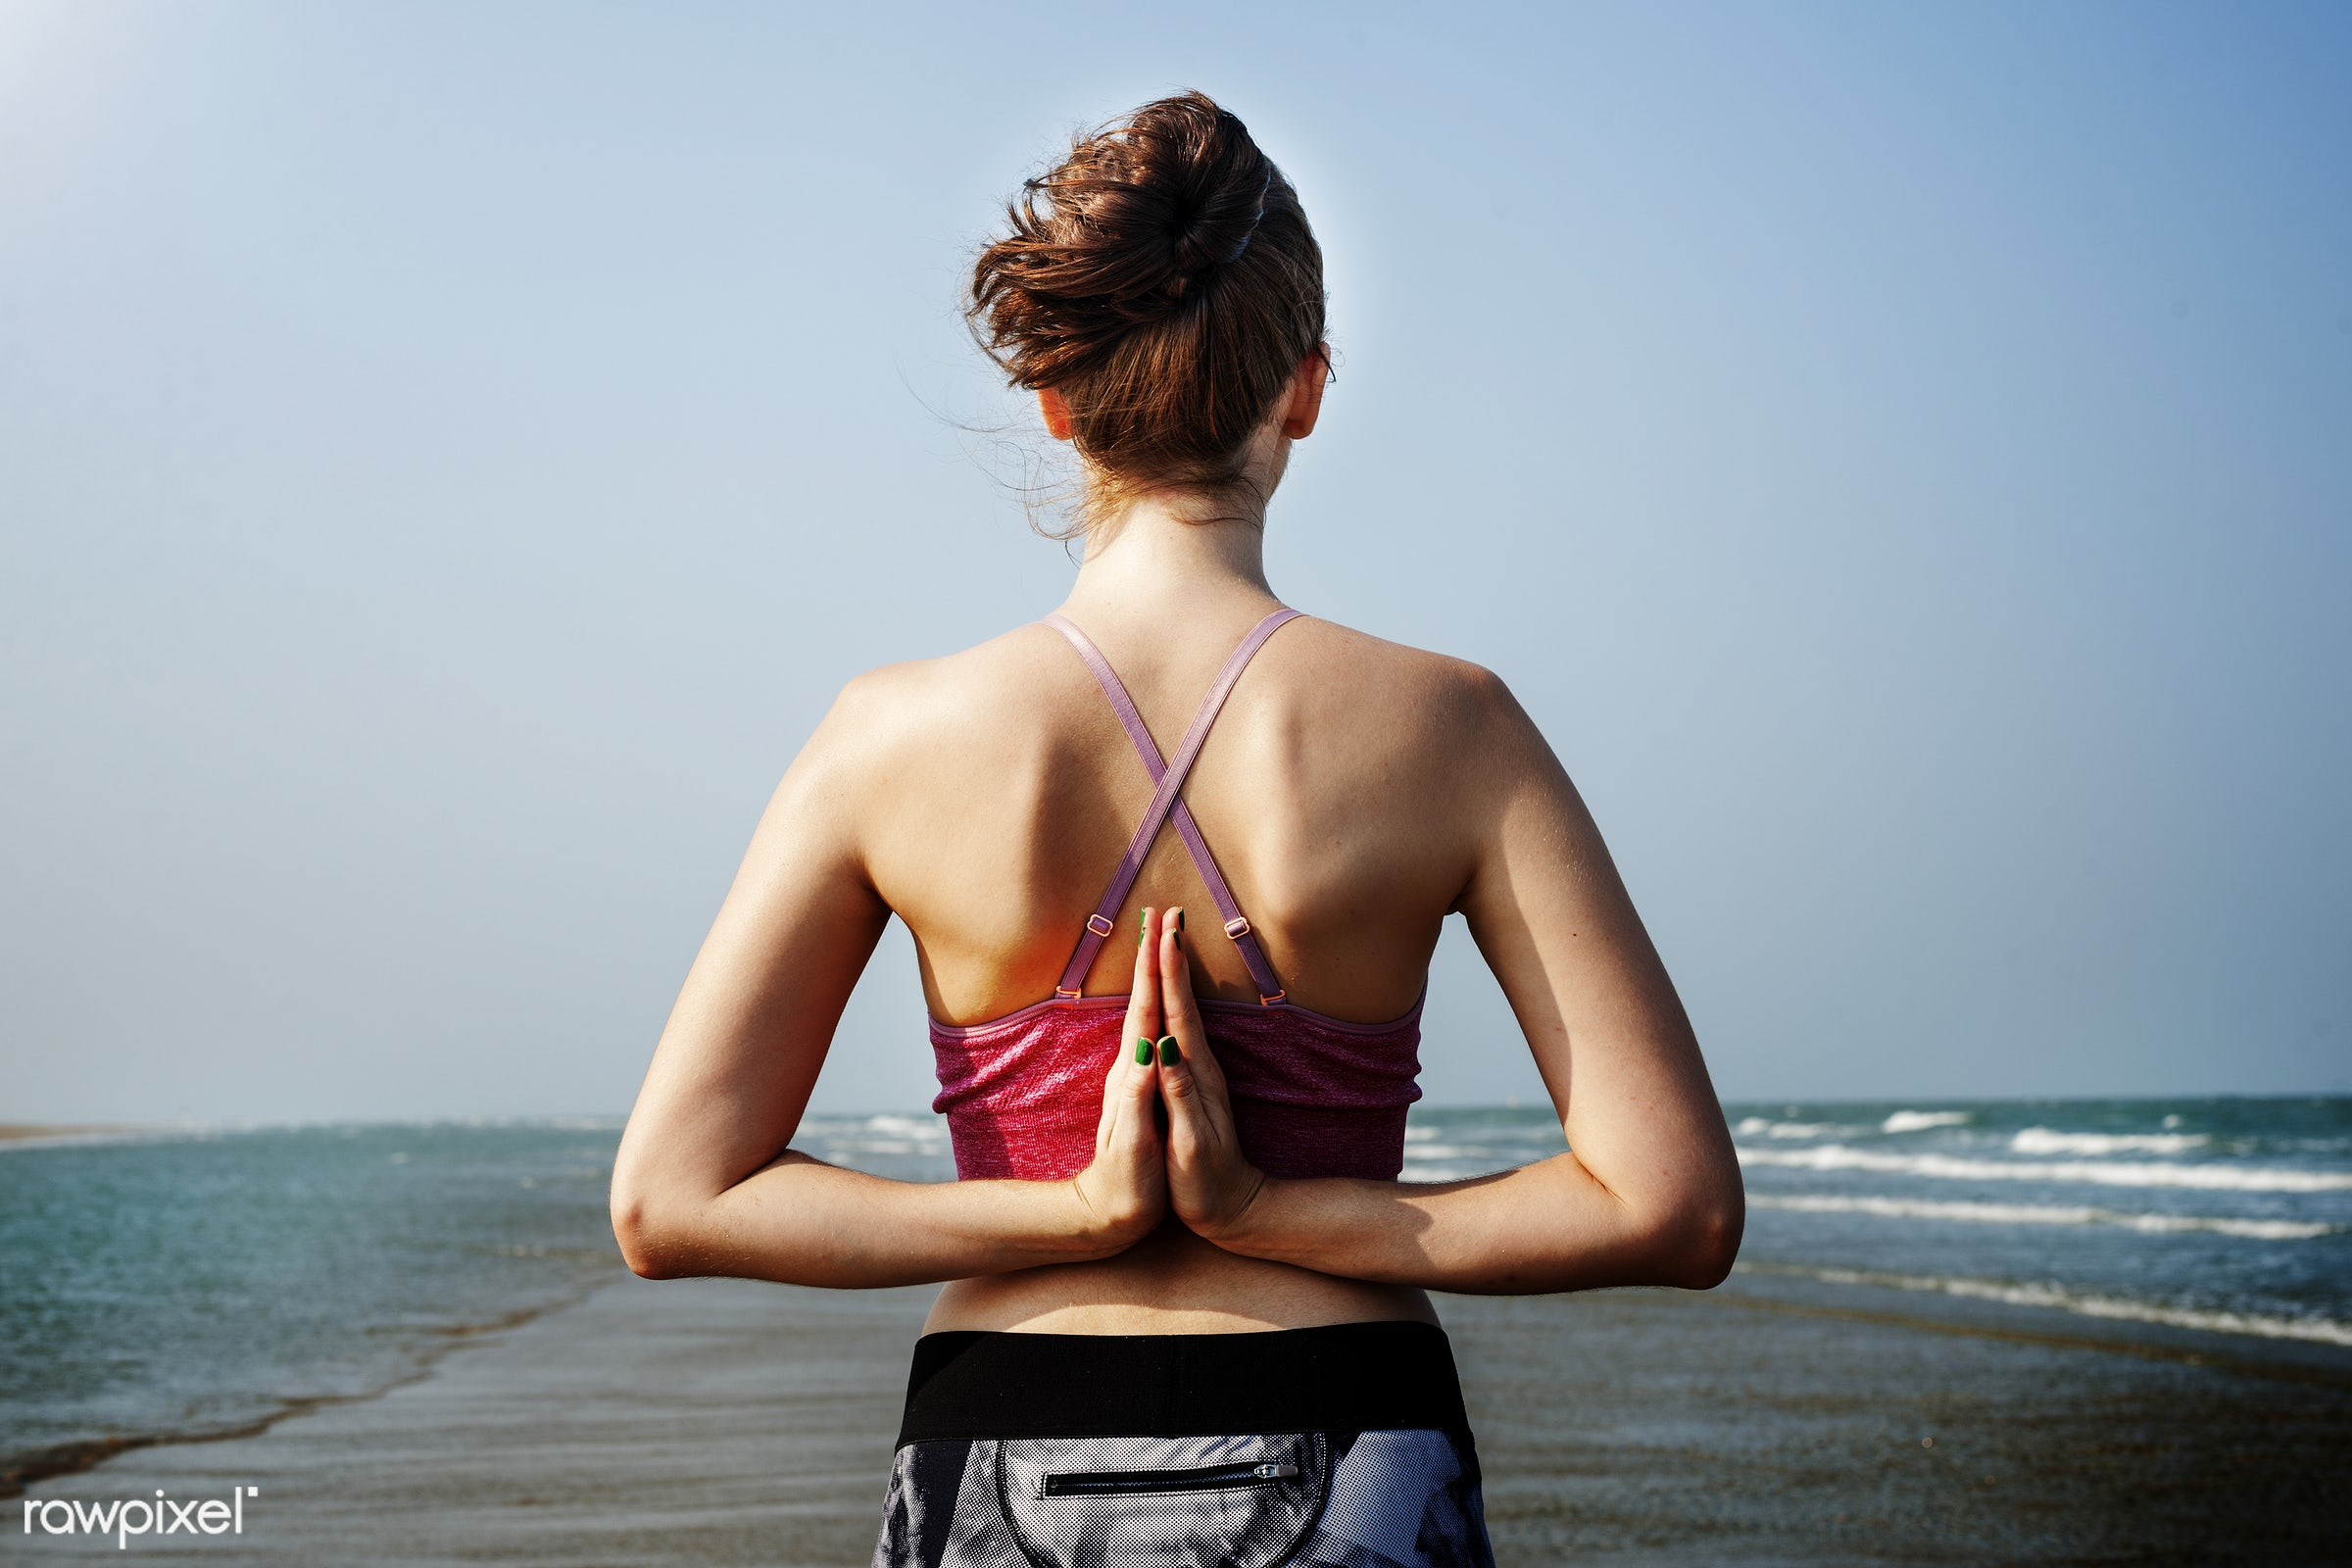 exercise, beach, training, pose, balance, namaste pose, nature, woman, wellbeing, alone, rear view, sand, reverse, strength...